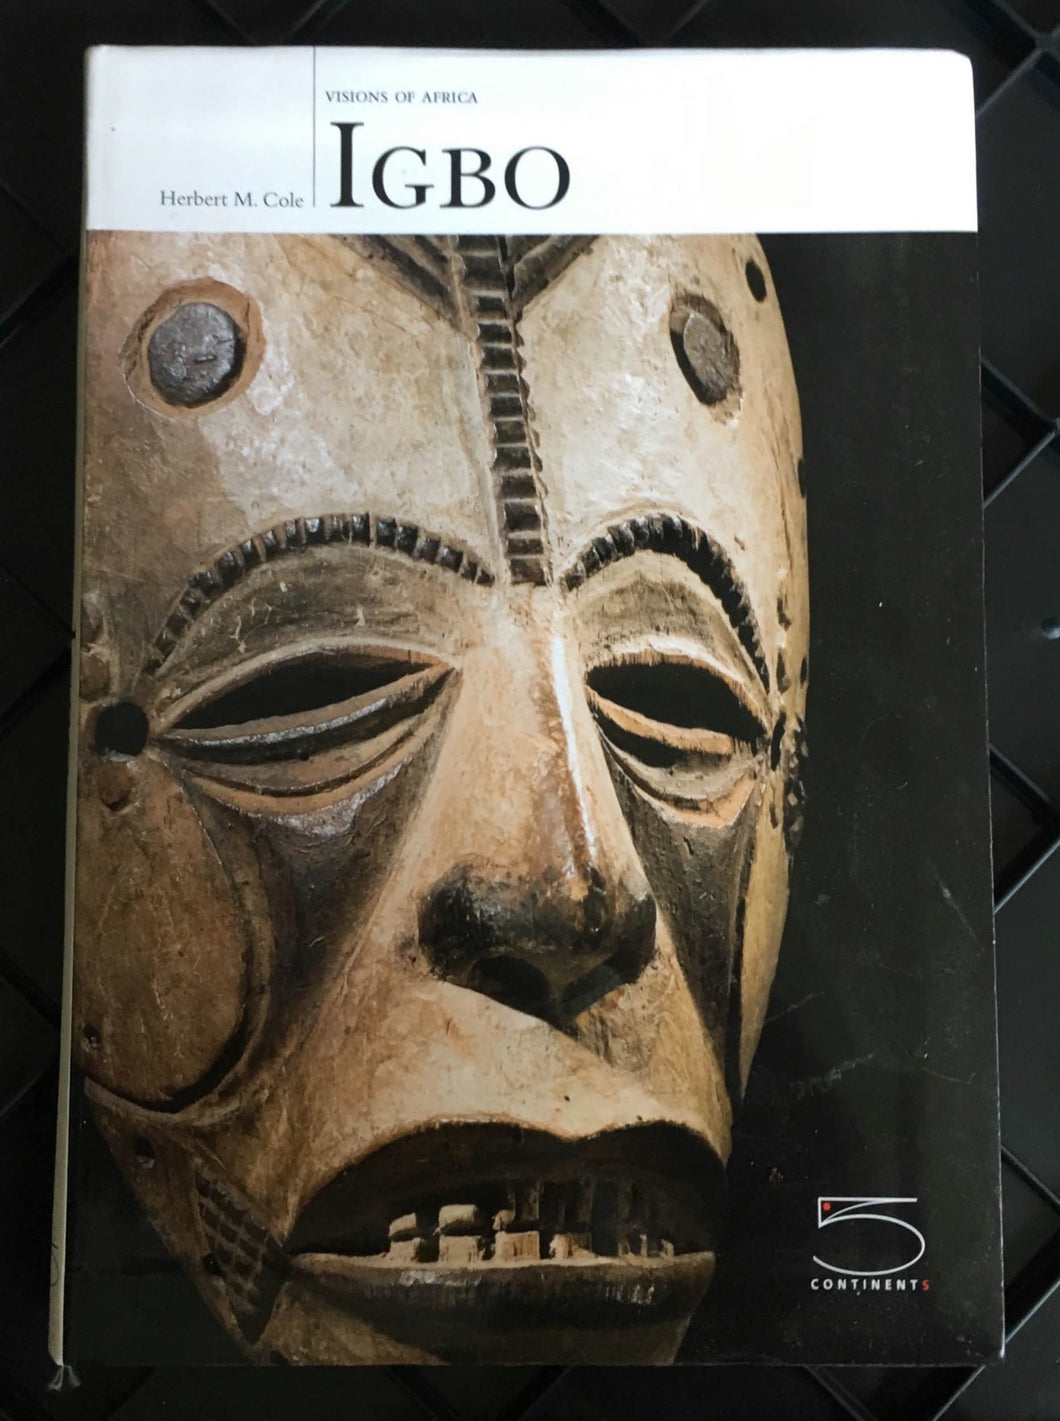 Book : Igbo Visions of Africa